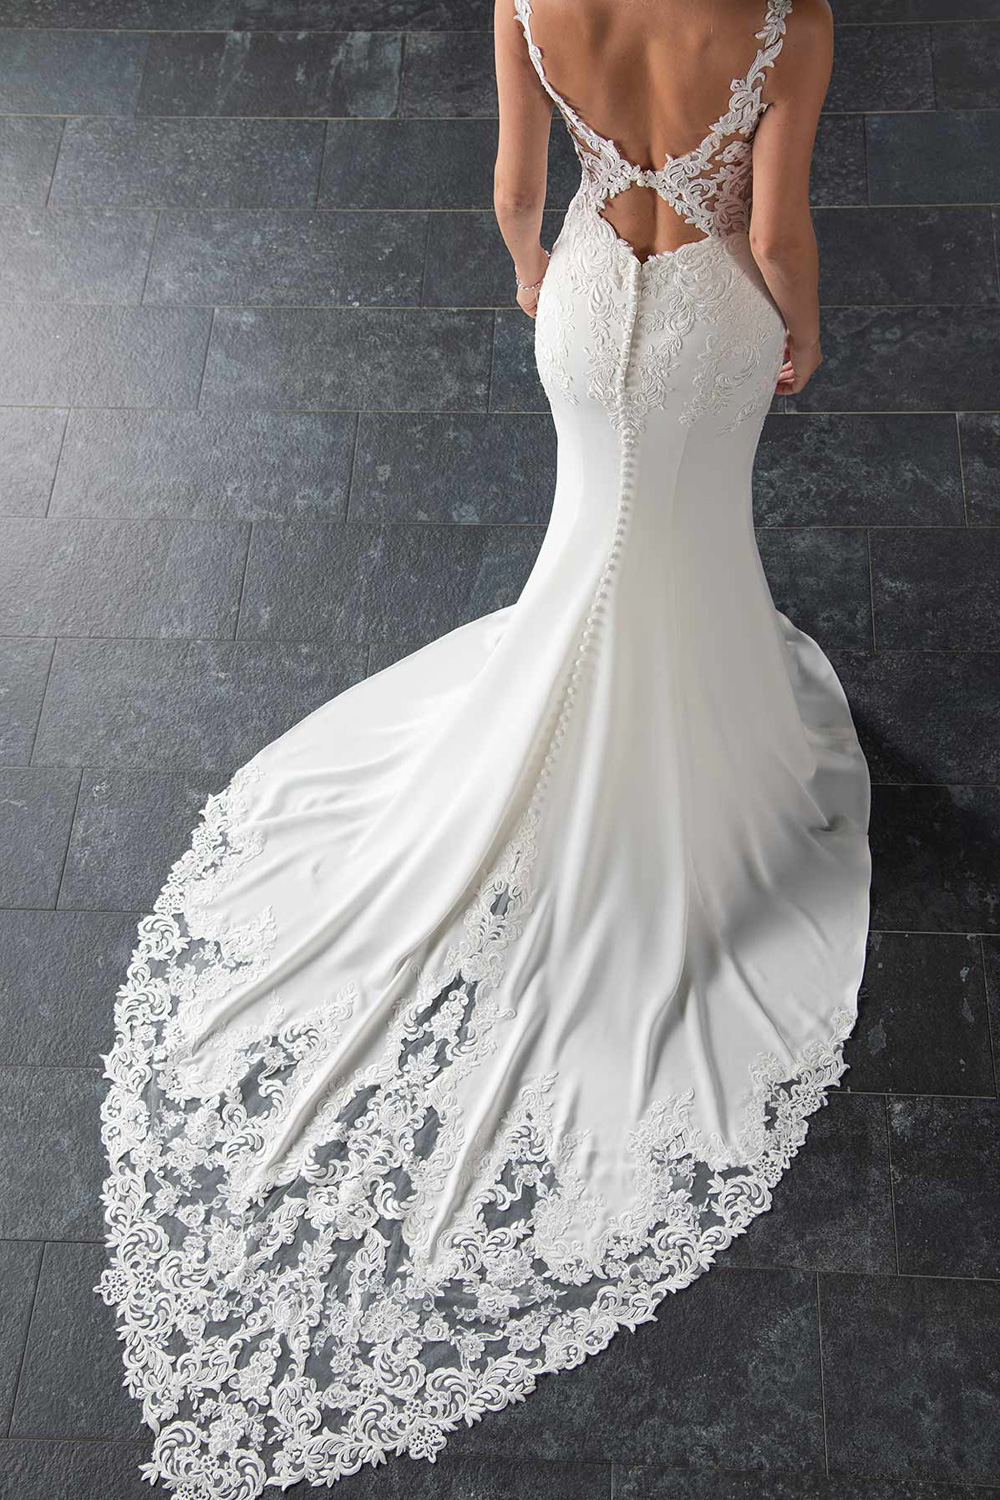 ac17996a313 This sexy wedding dress with sheer open back is a dream! A modern lace  pattern mixed with a sleek and chic crepe skirt creates one of the hottest  dresses in ...